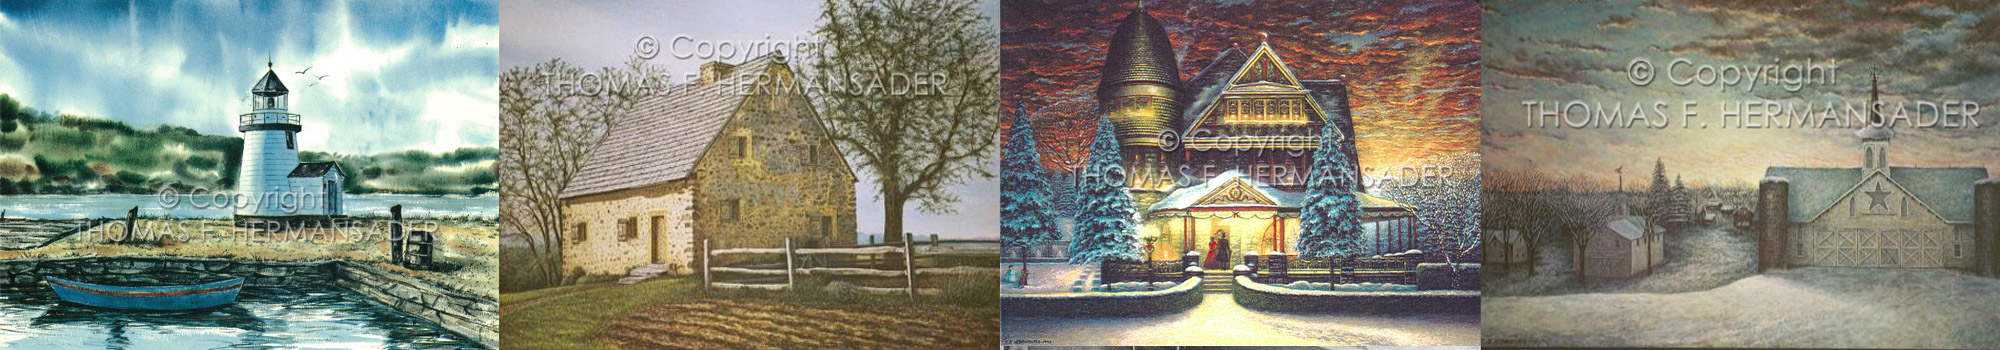 Painting collection header image